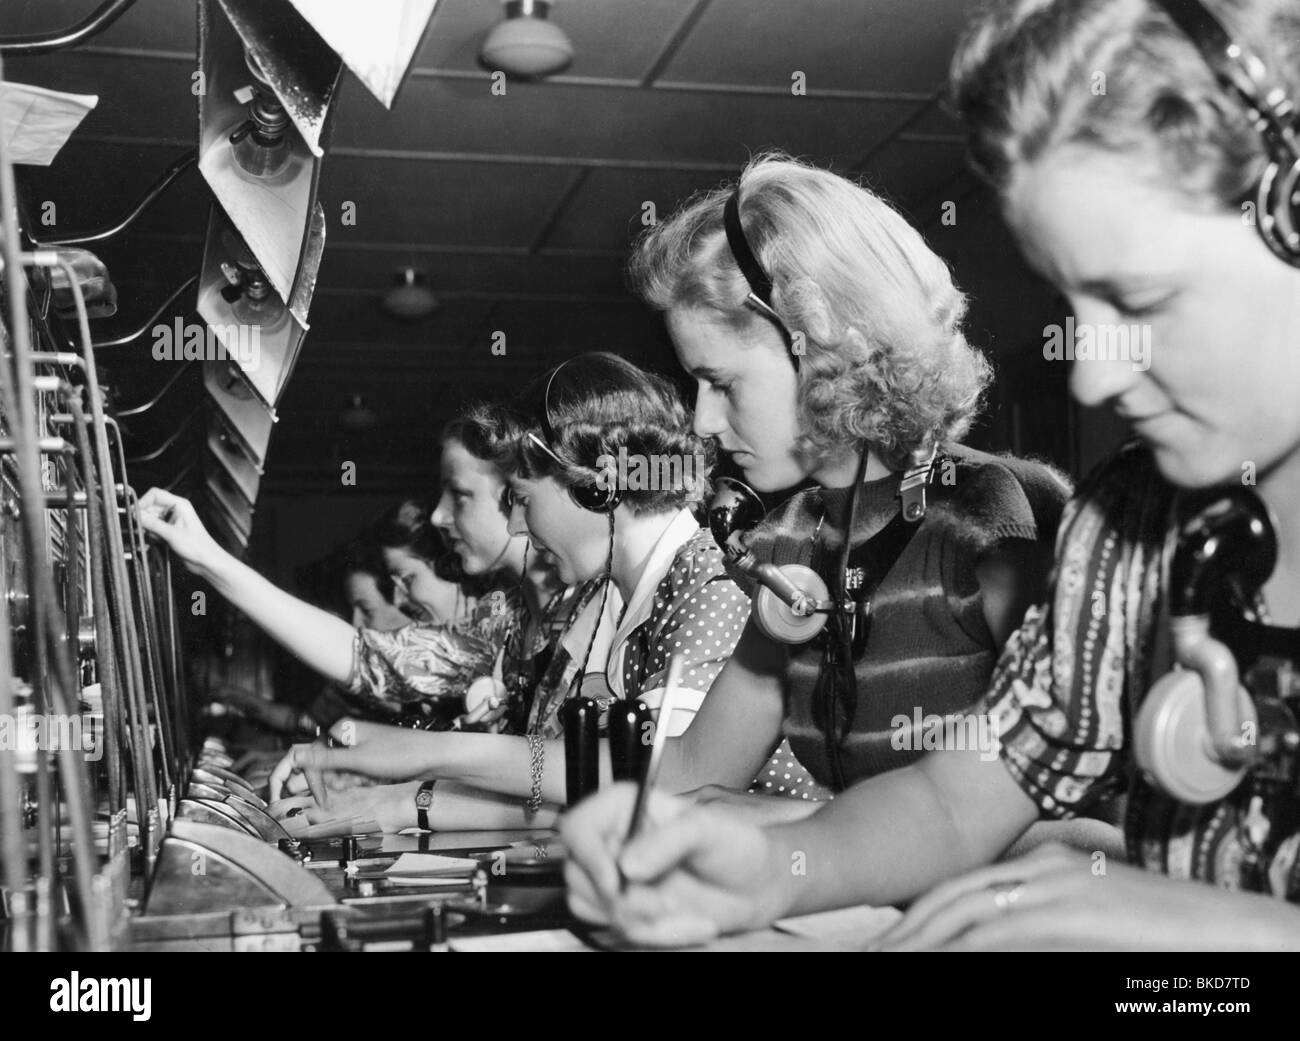 switchboards stock photos switchboards stock images alamy mail post telephone telephonists 1950s 50s 20th century historic